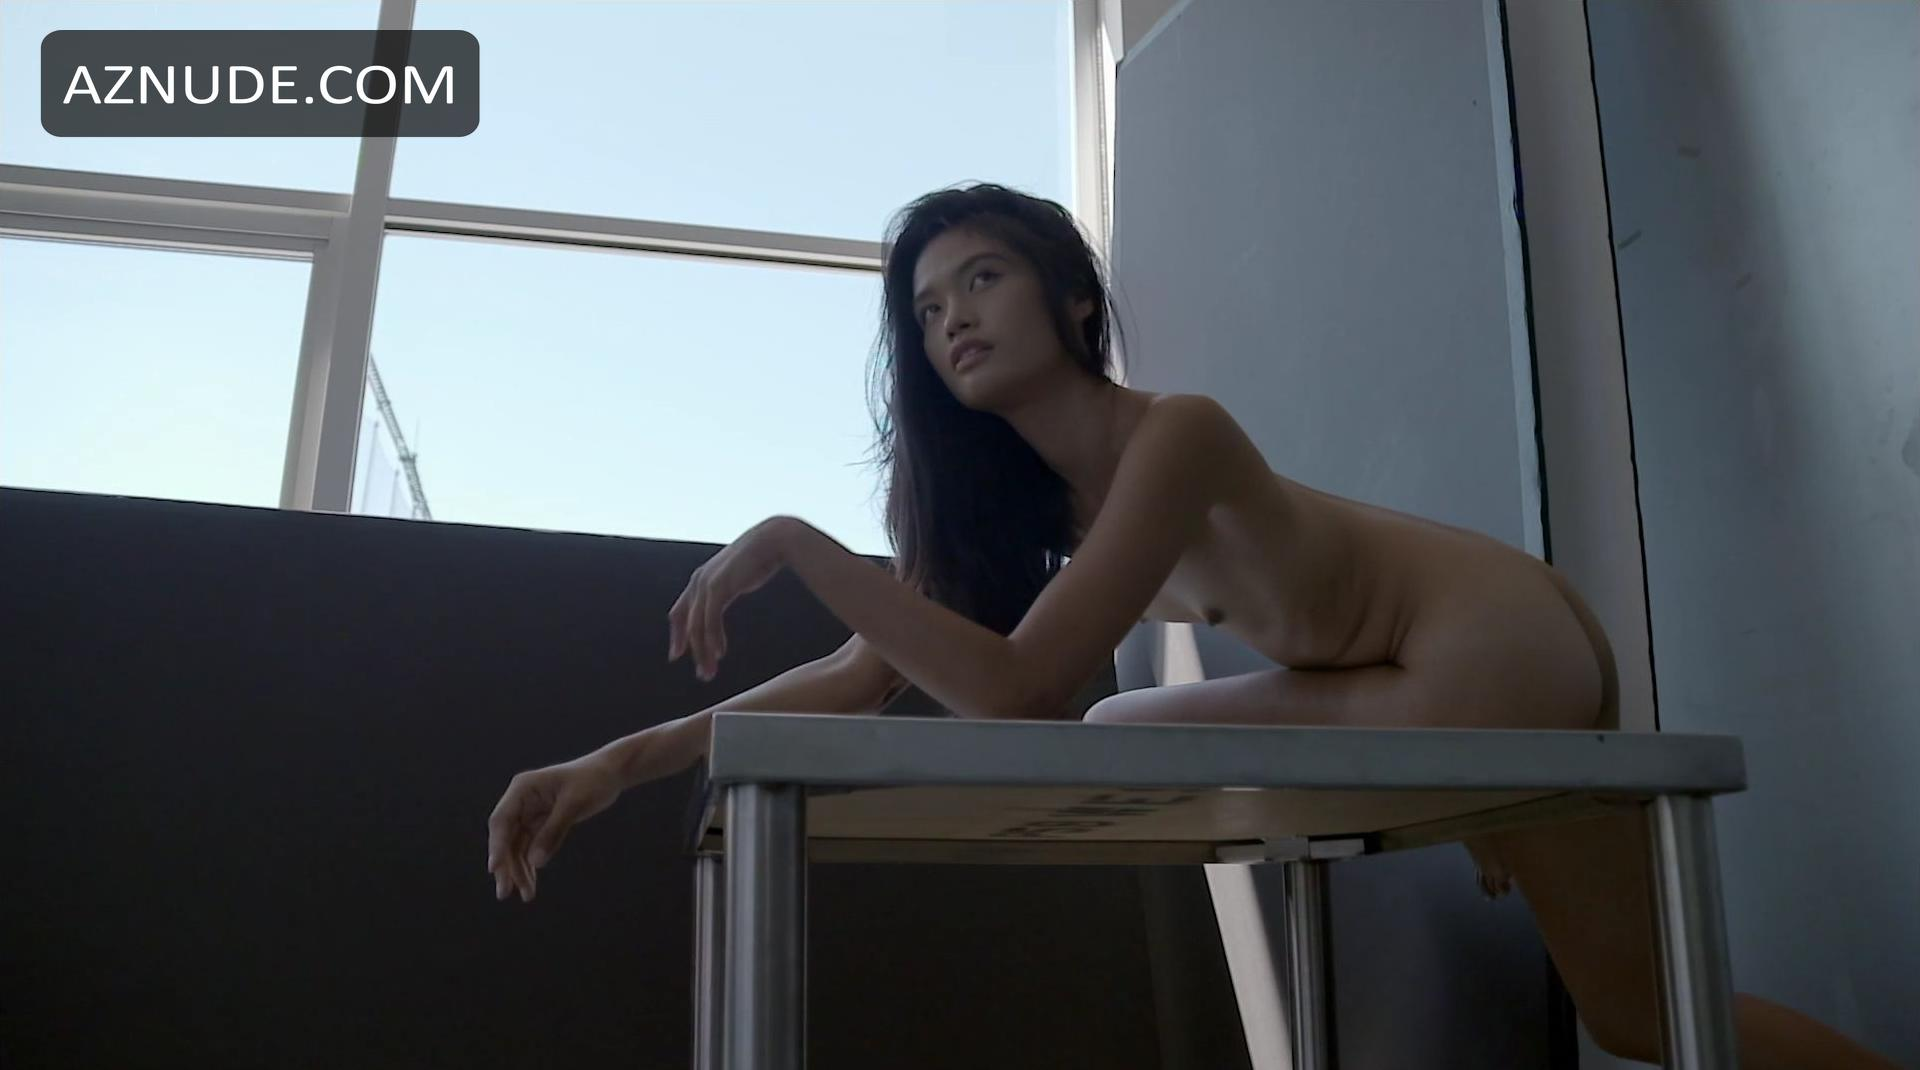 Sex Janine Tugonon nudes (62 foto and video), Topless, Sideboobs, Selfie, legs 2020